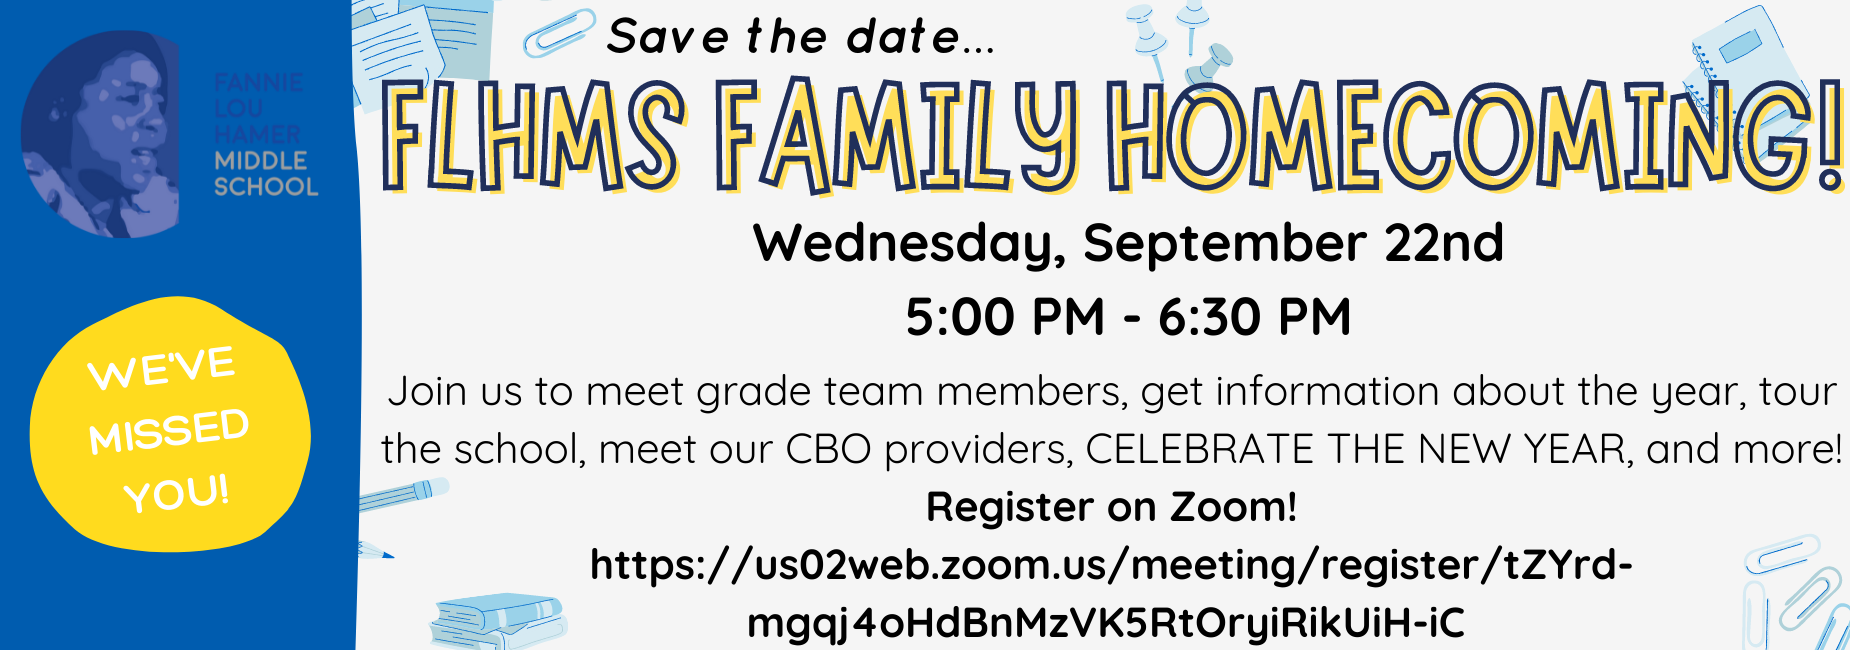 FLHMS Homecoming! Register on Zoom Register in advance for this meeting: https://us02web.zoom.us/meeting/register/tZYrd-mgqj4oHdBnMzVK5RtOryiRikUiH-iC